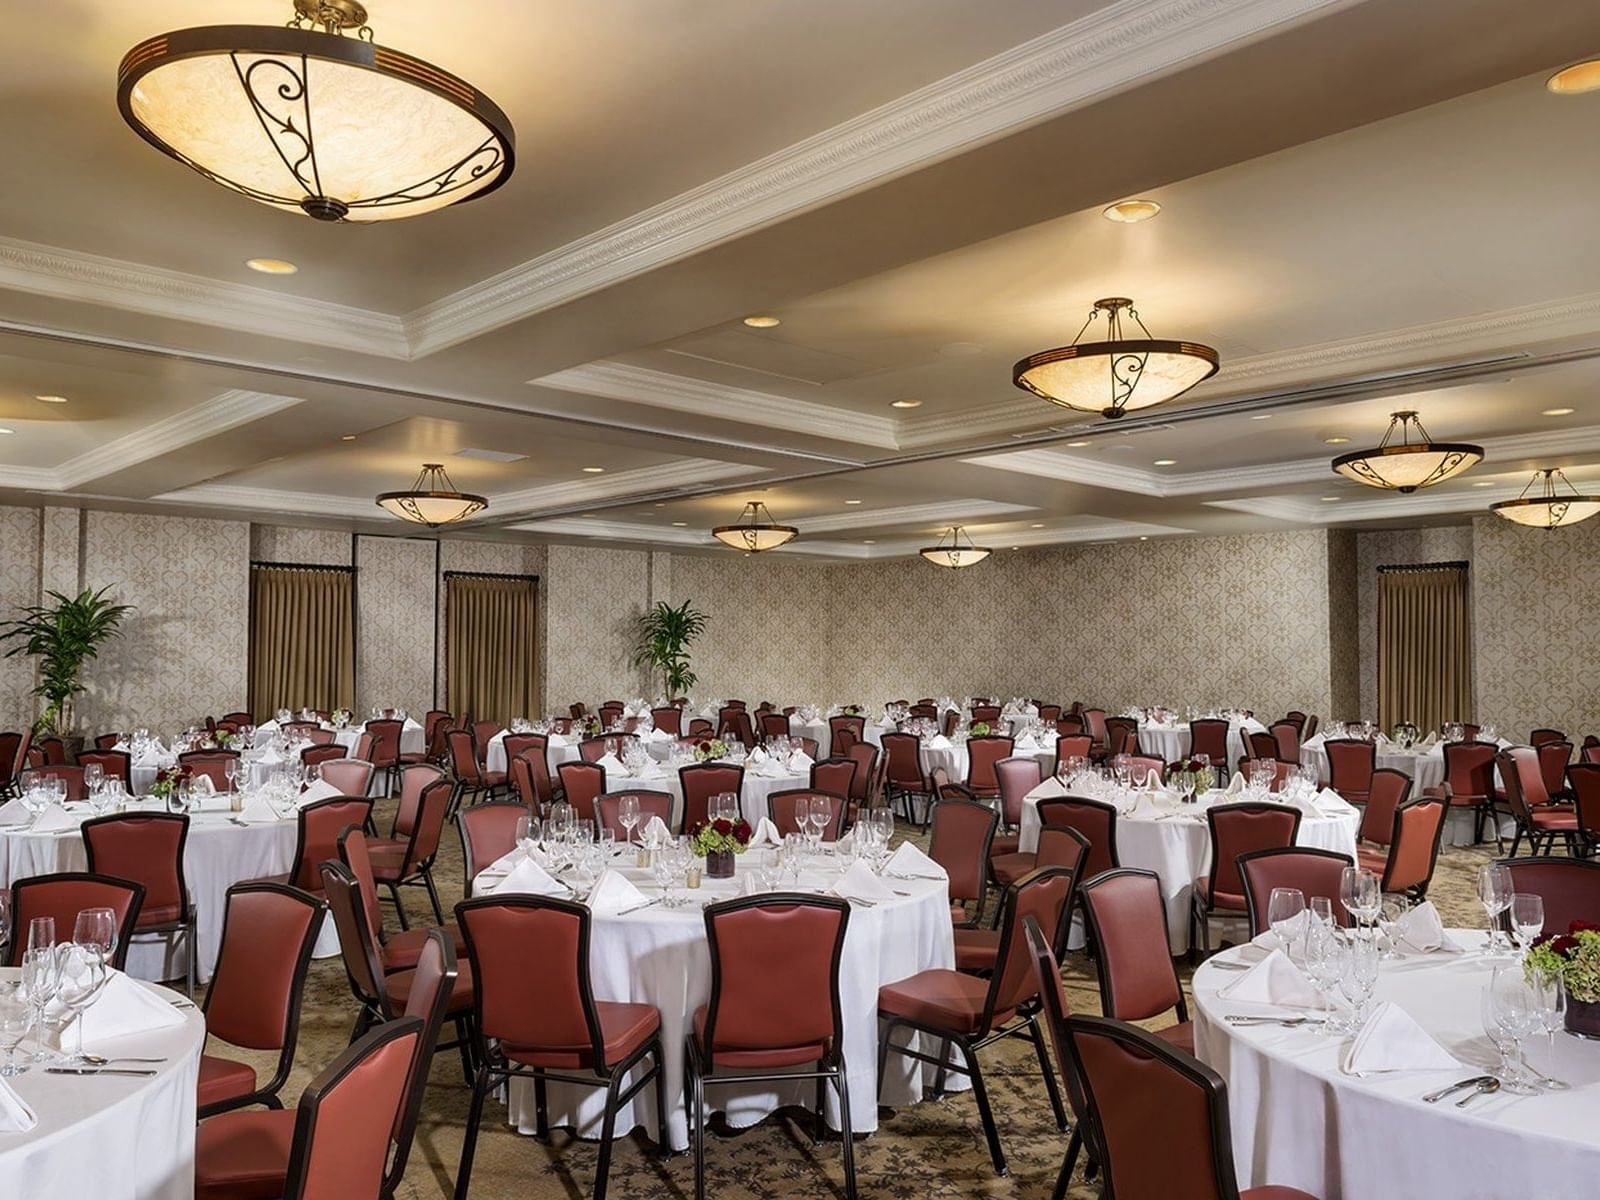 Ballroom with round tables set for dining